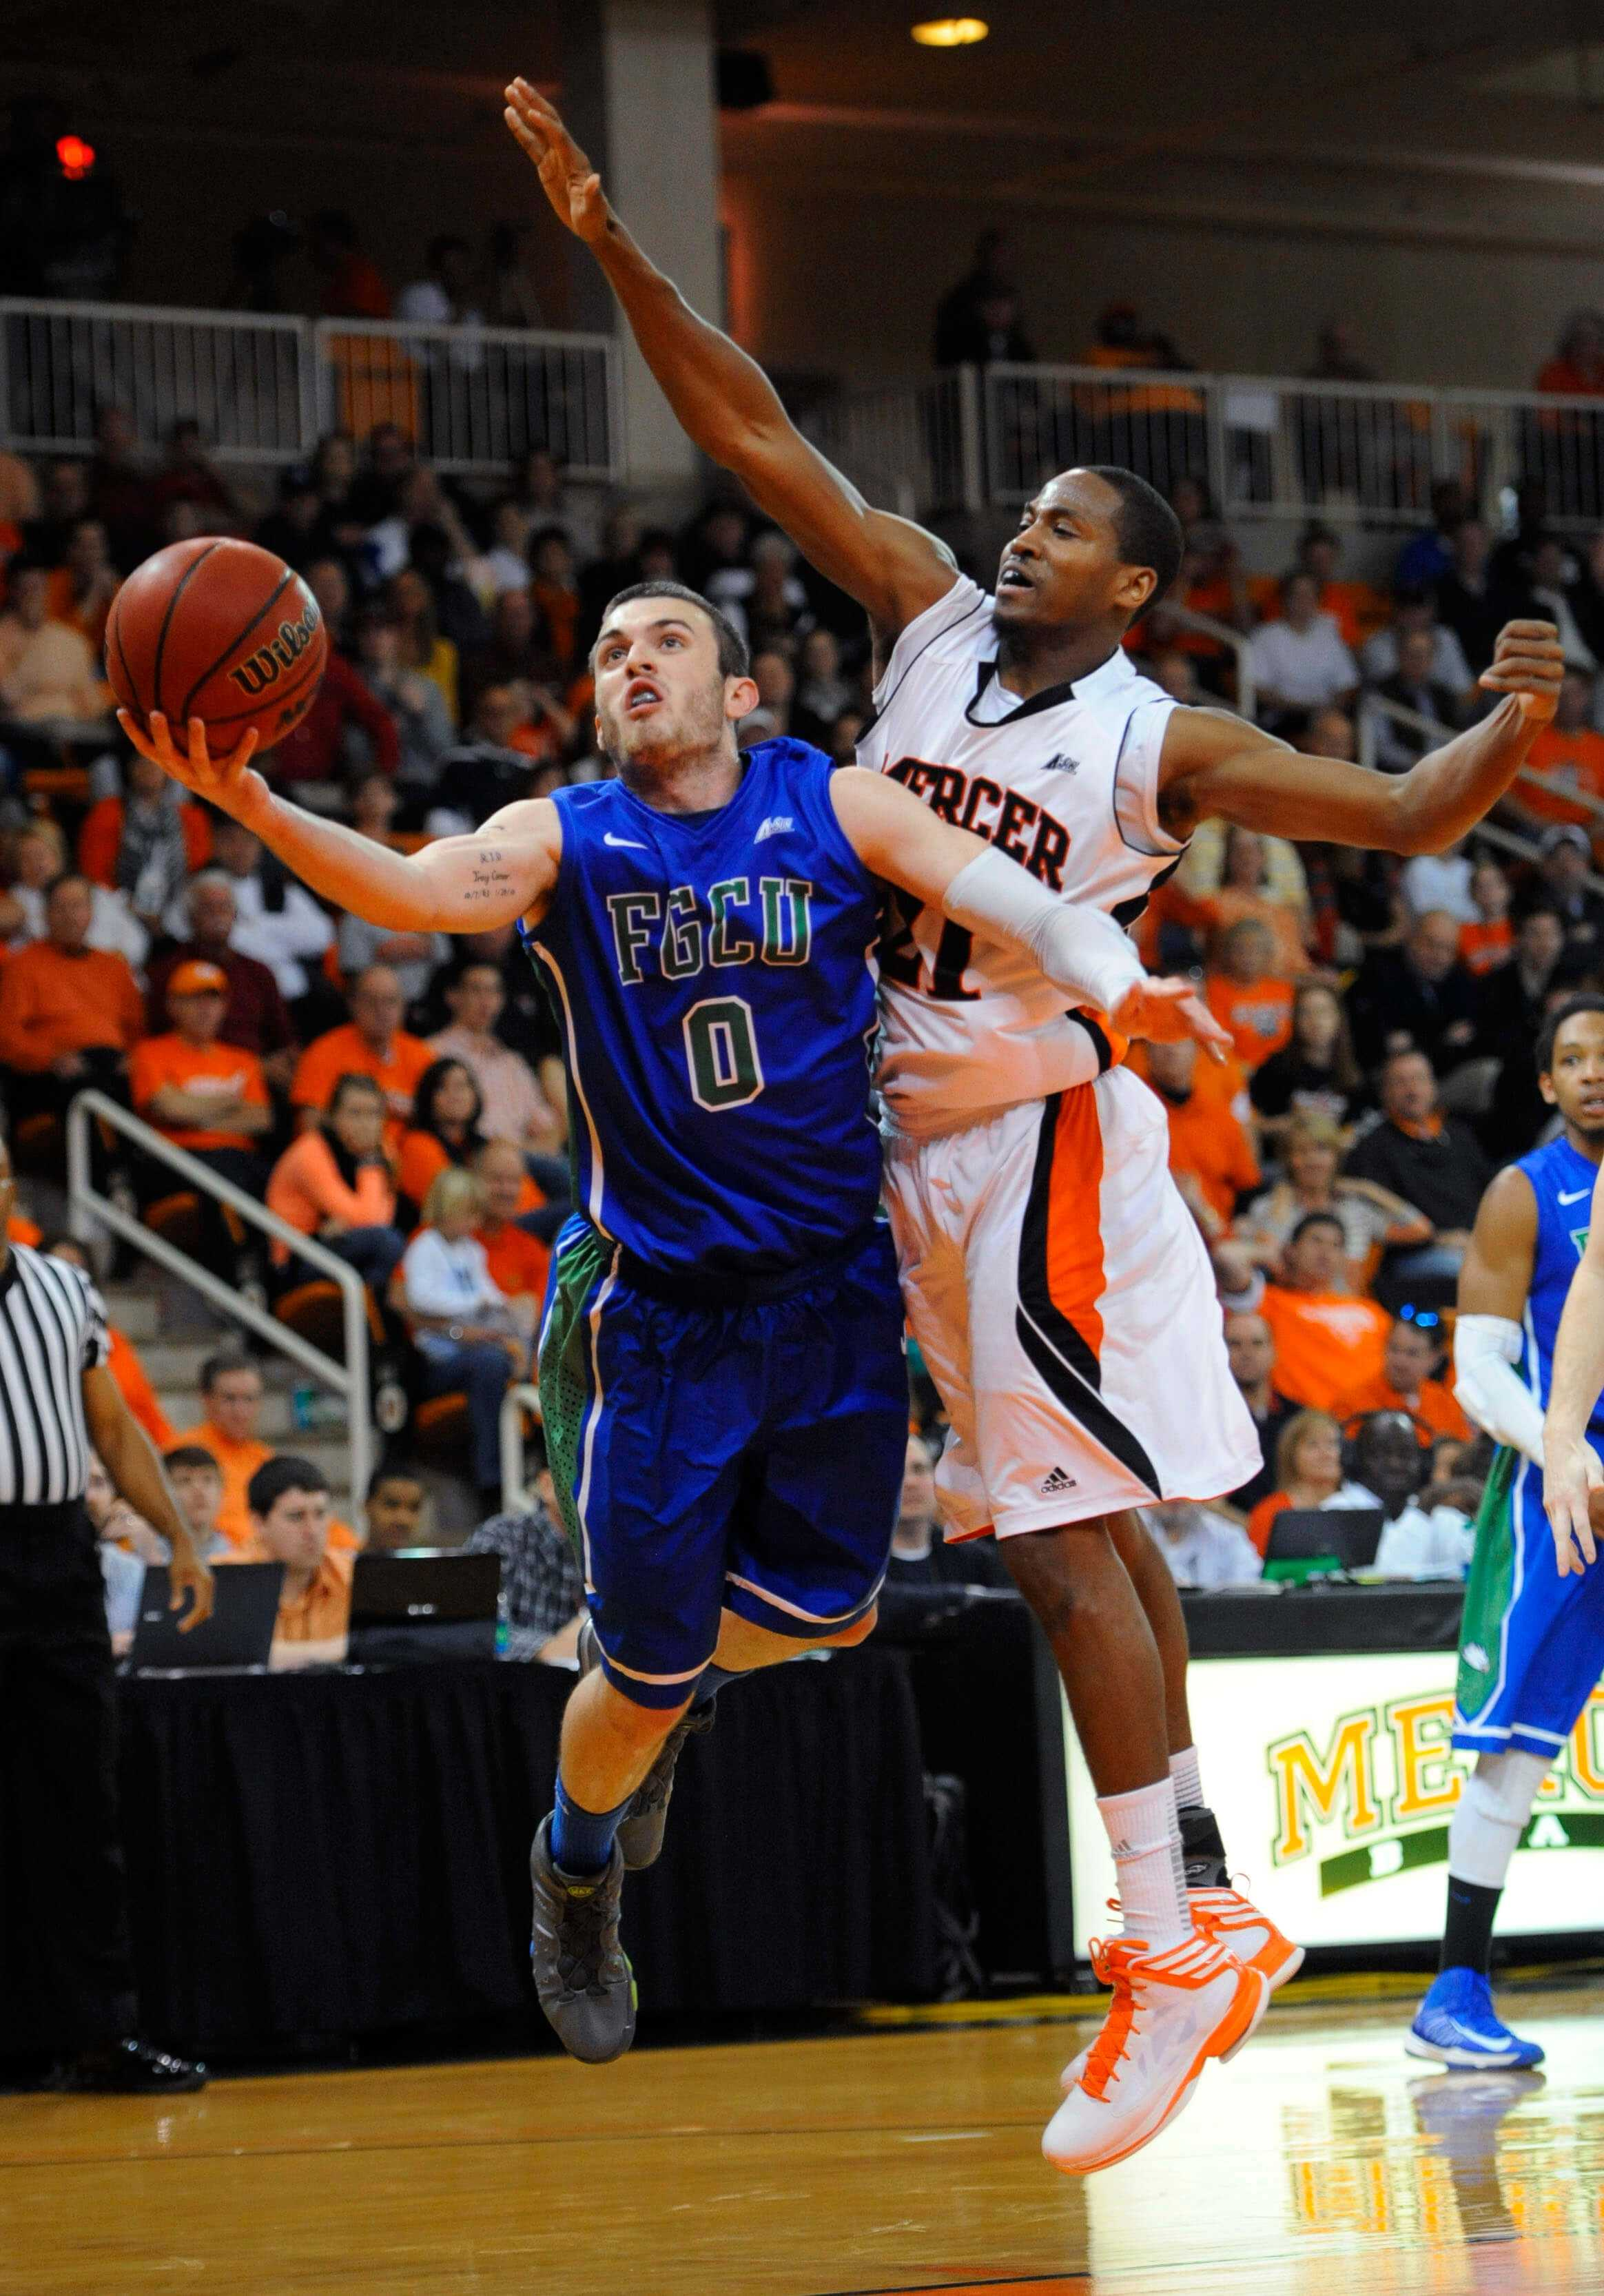 A-Sun Tourney: FGCU men take down top seed for trip to dance